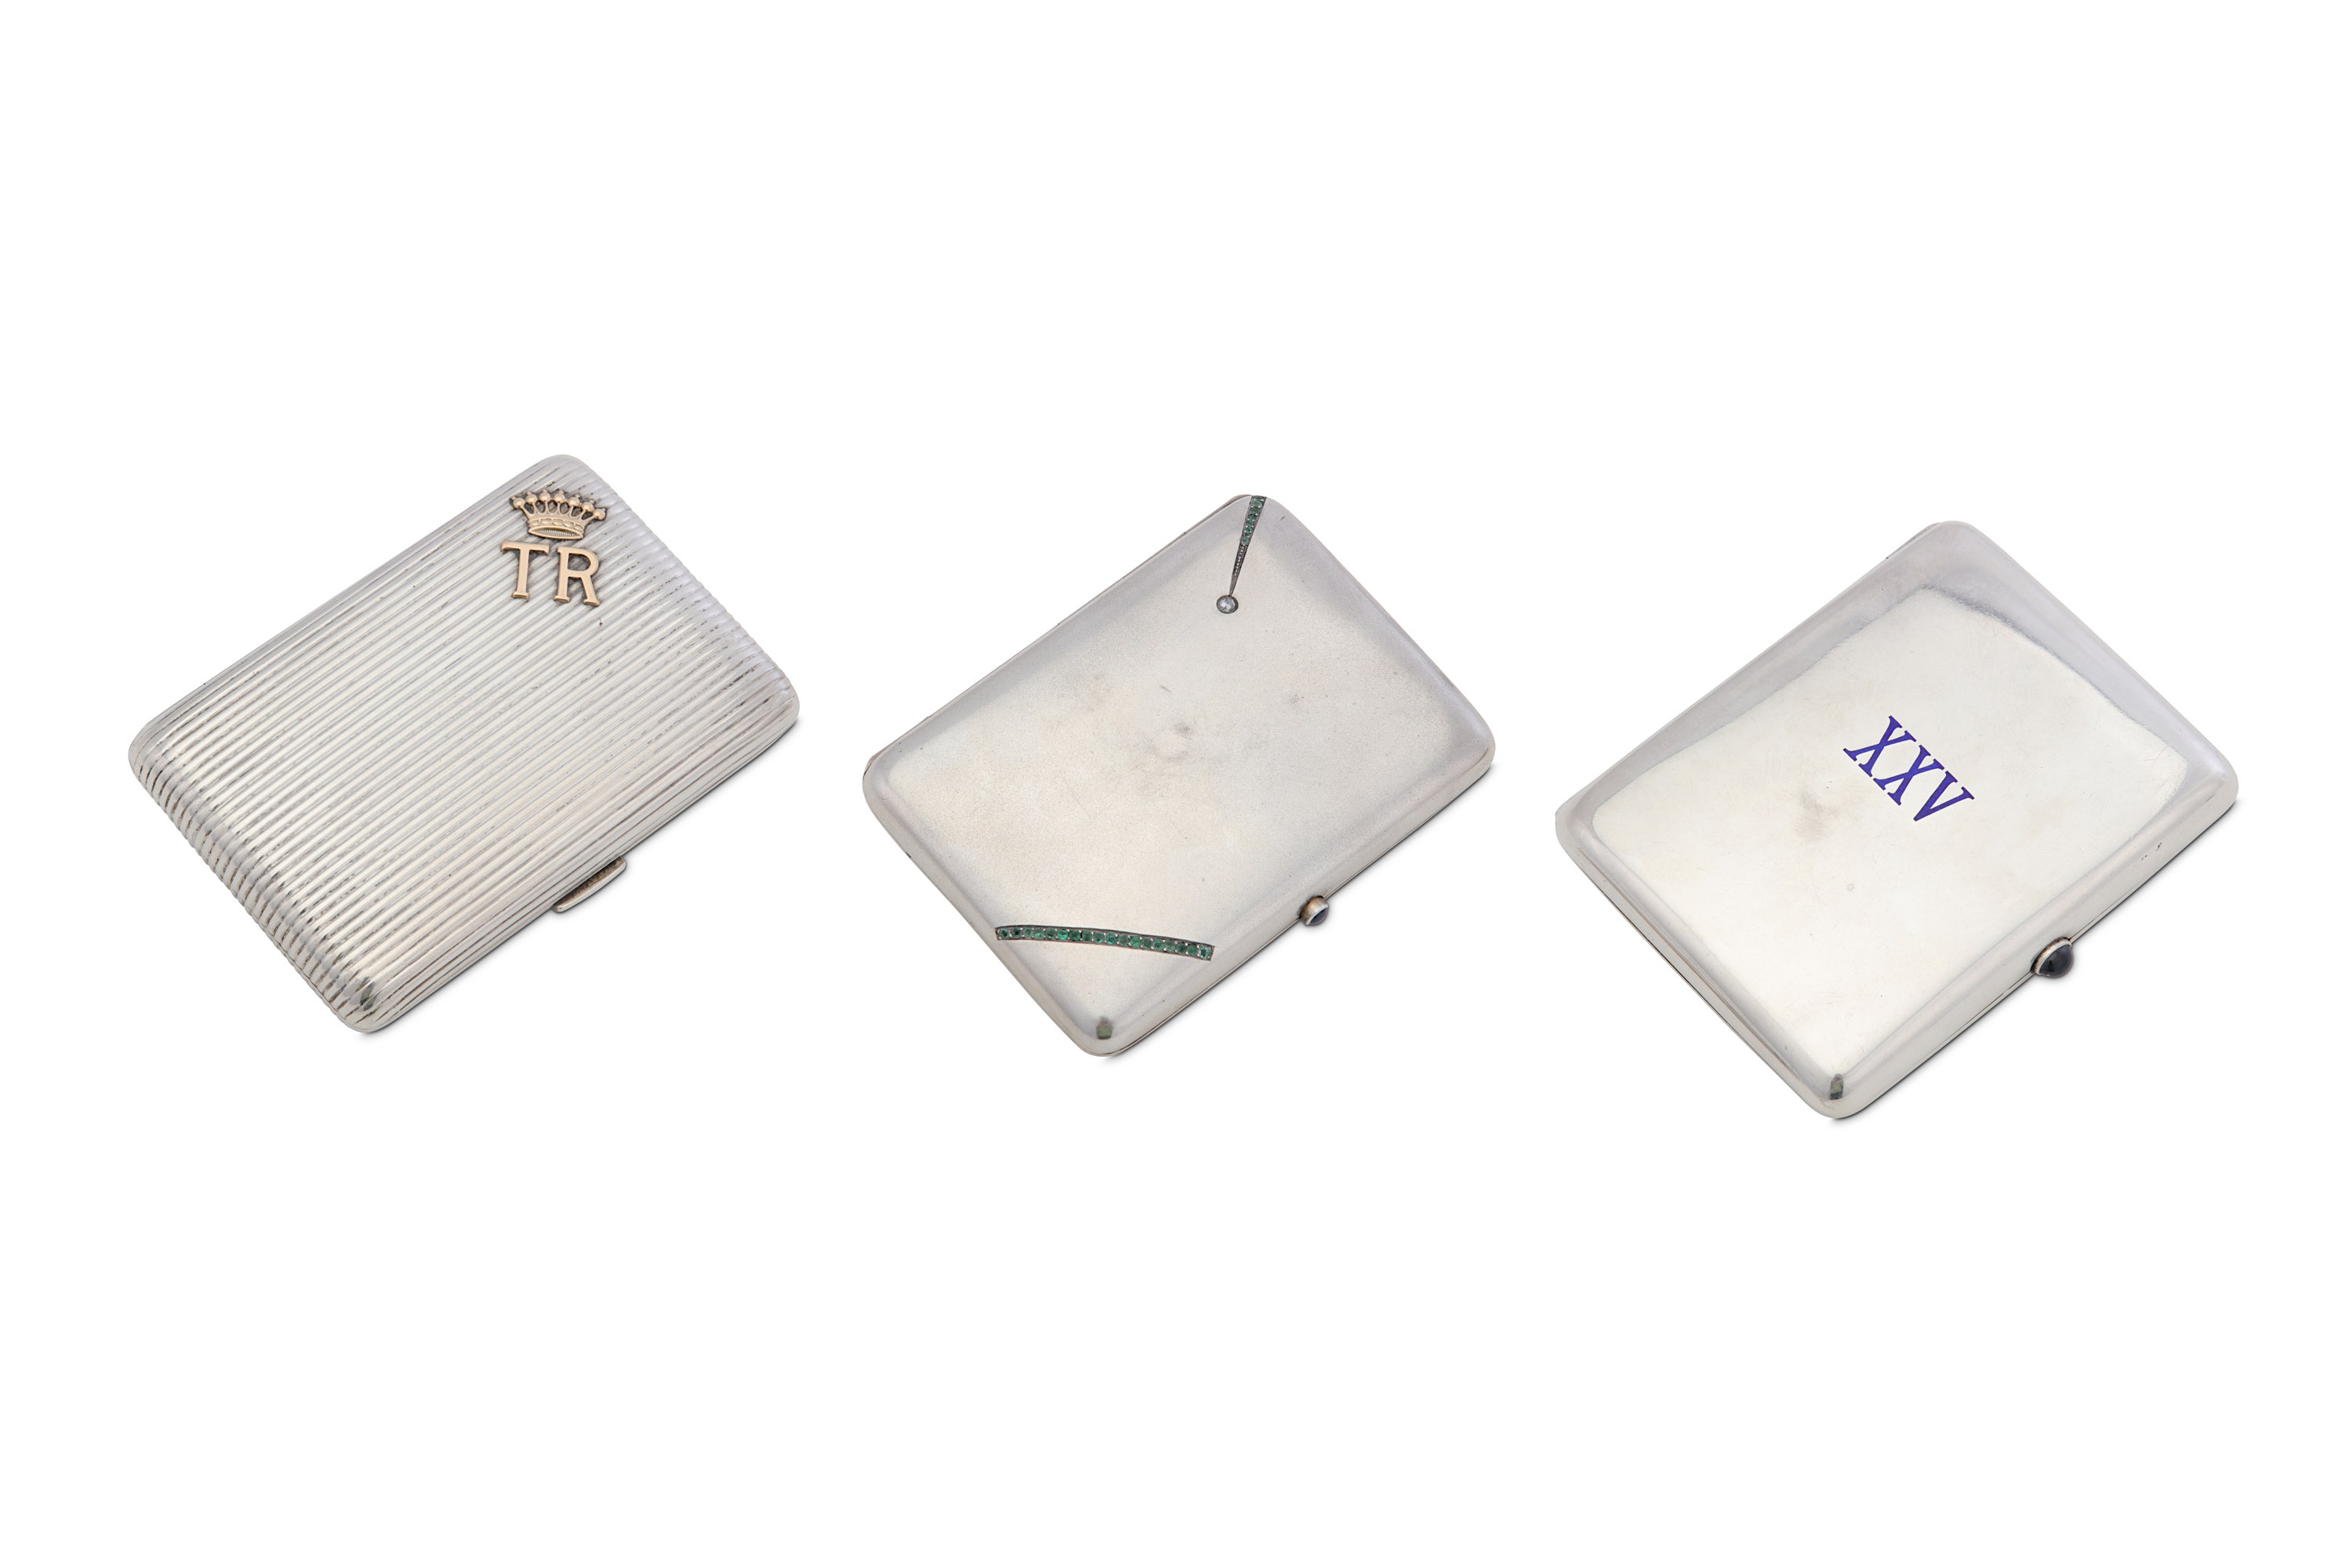 Lot 19 - A group of three Austrian silver cigarette cases, including an early 20th century reeded 800 standar